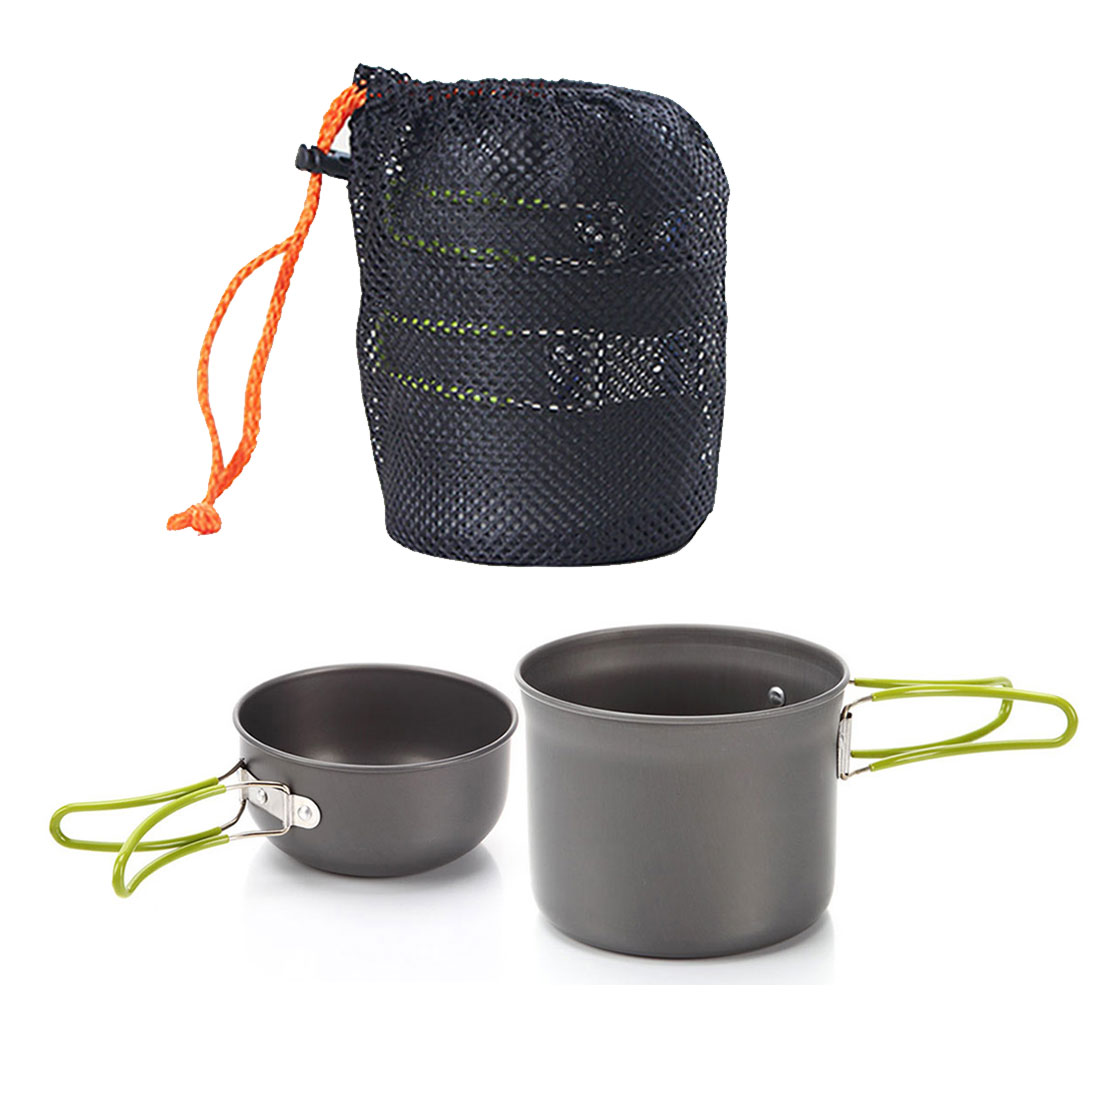 e4cb12bfbba Top Sale non stick Cookware Outdoor Aluminum Pots Pans Bowls with foldable  handle Camping cookware set Hiking Picnic Cooking Set on Aliexpress.com